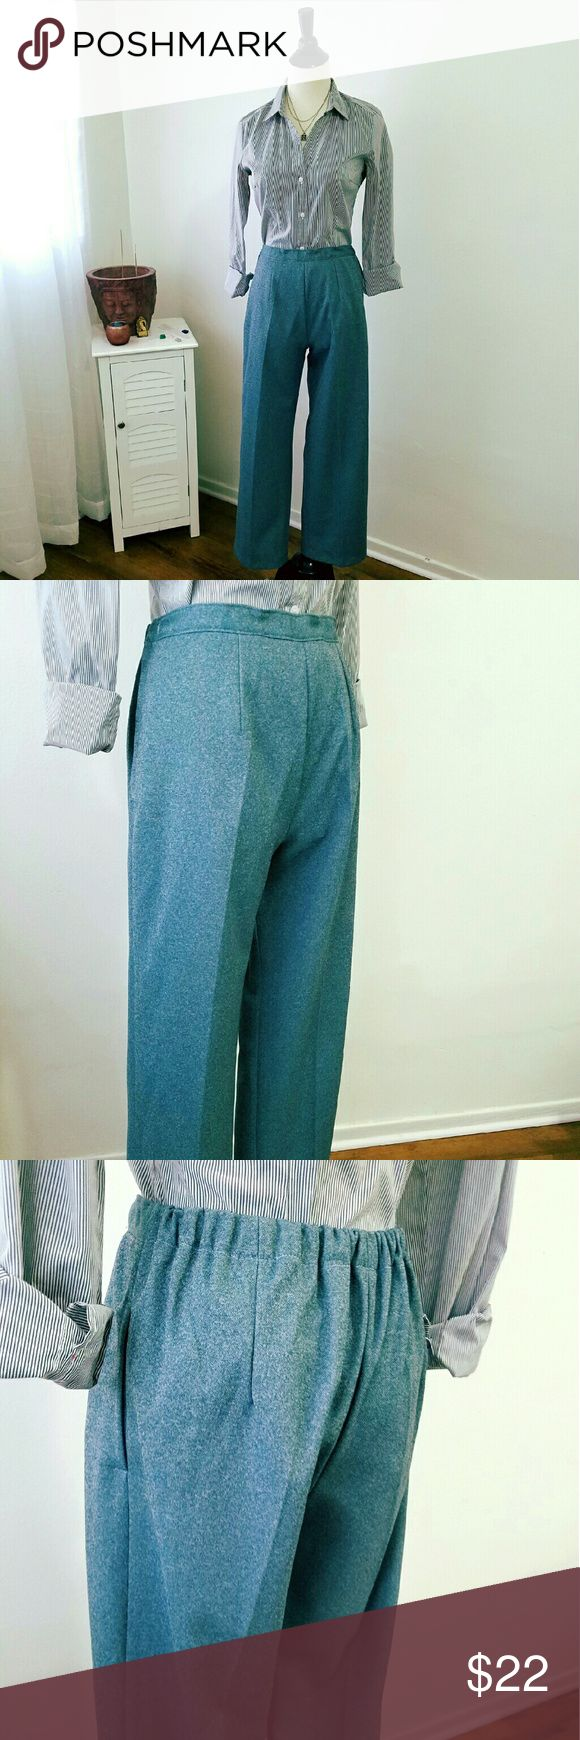 "Vintage Capri Trousers Vintage grey blue trousers.  They are a short capri style and has one pocket on the left side.  Great condition, no tags or sizes. Fits like a woman's size 2/4  25"" waist 27"" inseam. Waistband has stretch, can extended up to 4"". Vintage Pants Capris"